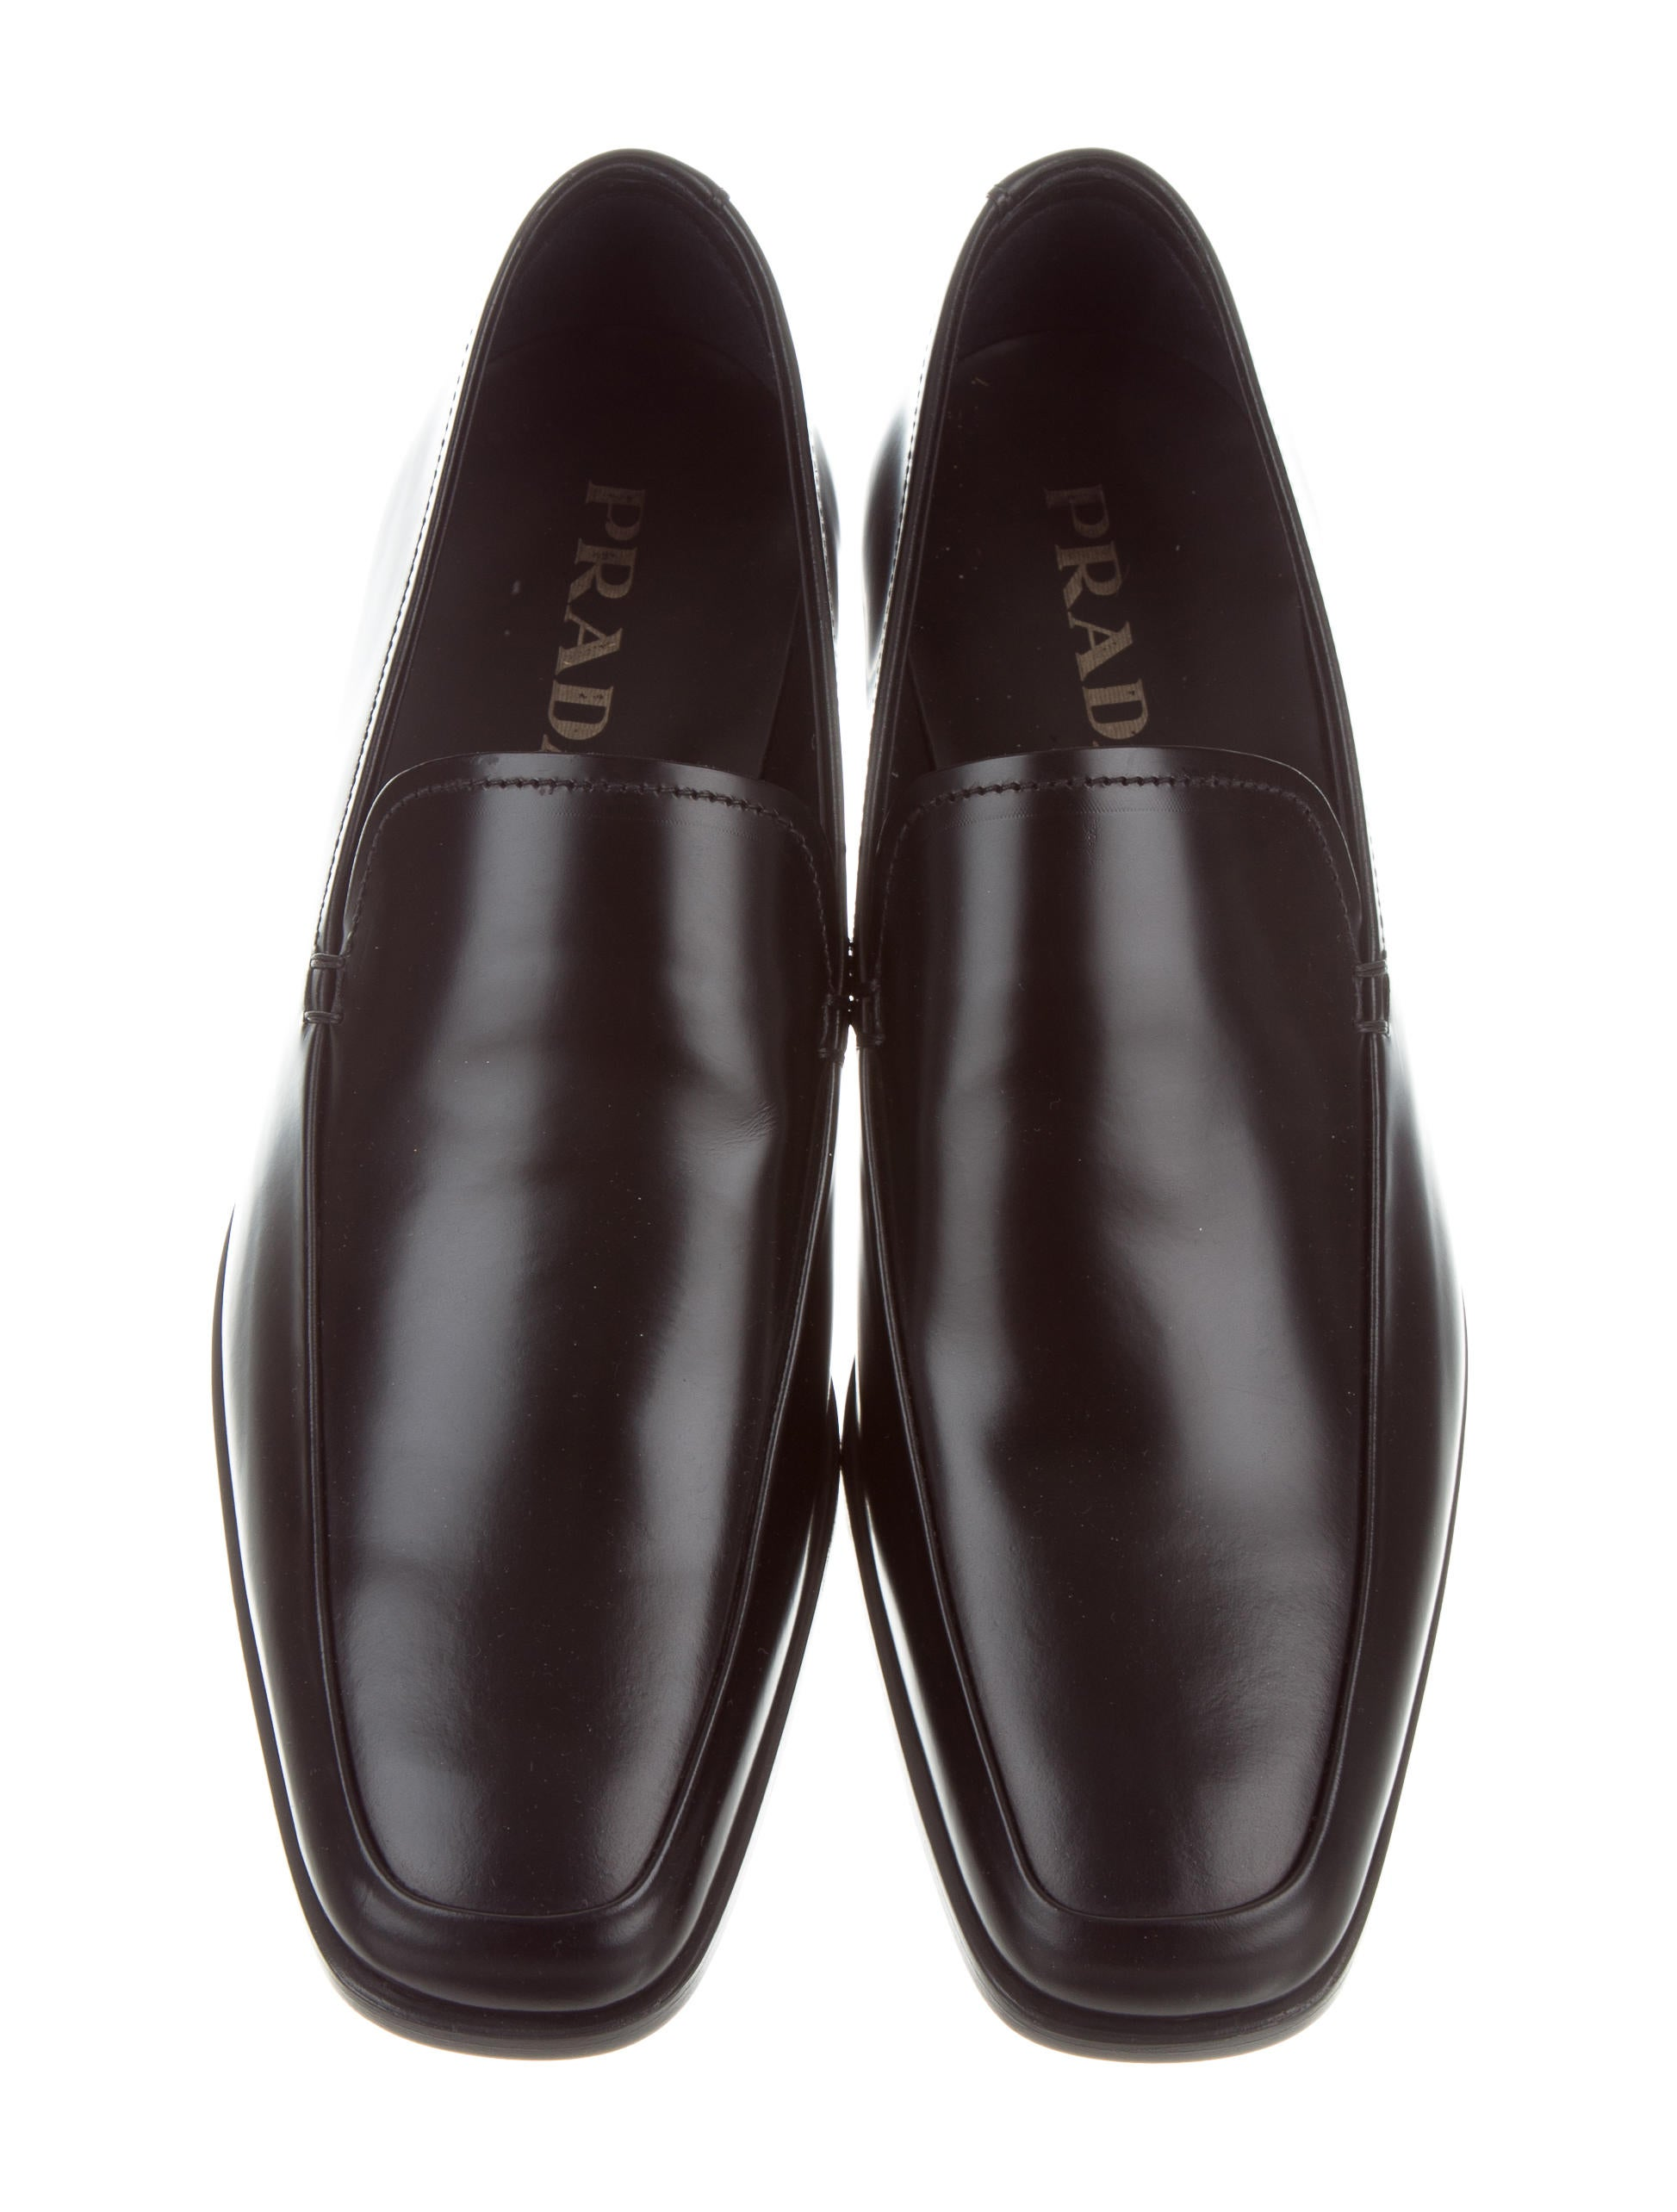 Prada Square-Toe Leather Loafers w/ Tags buy cheap find great websites cheap price HlfJiC